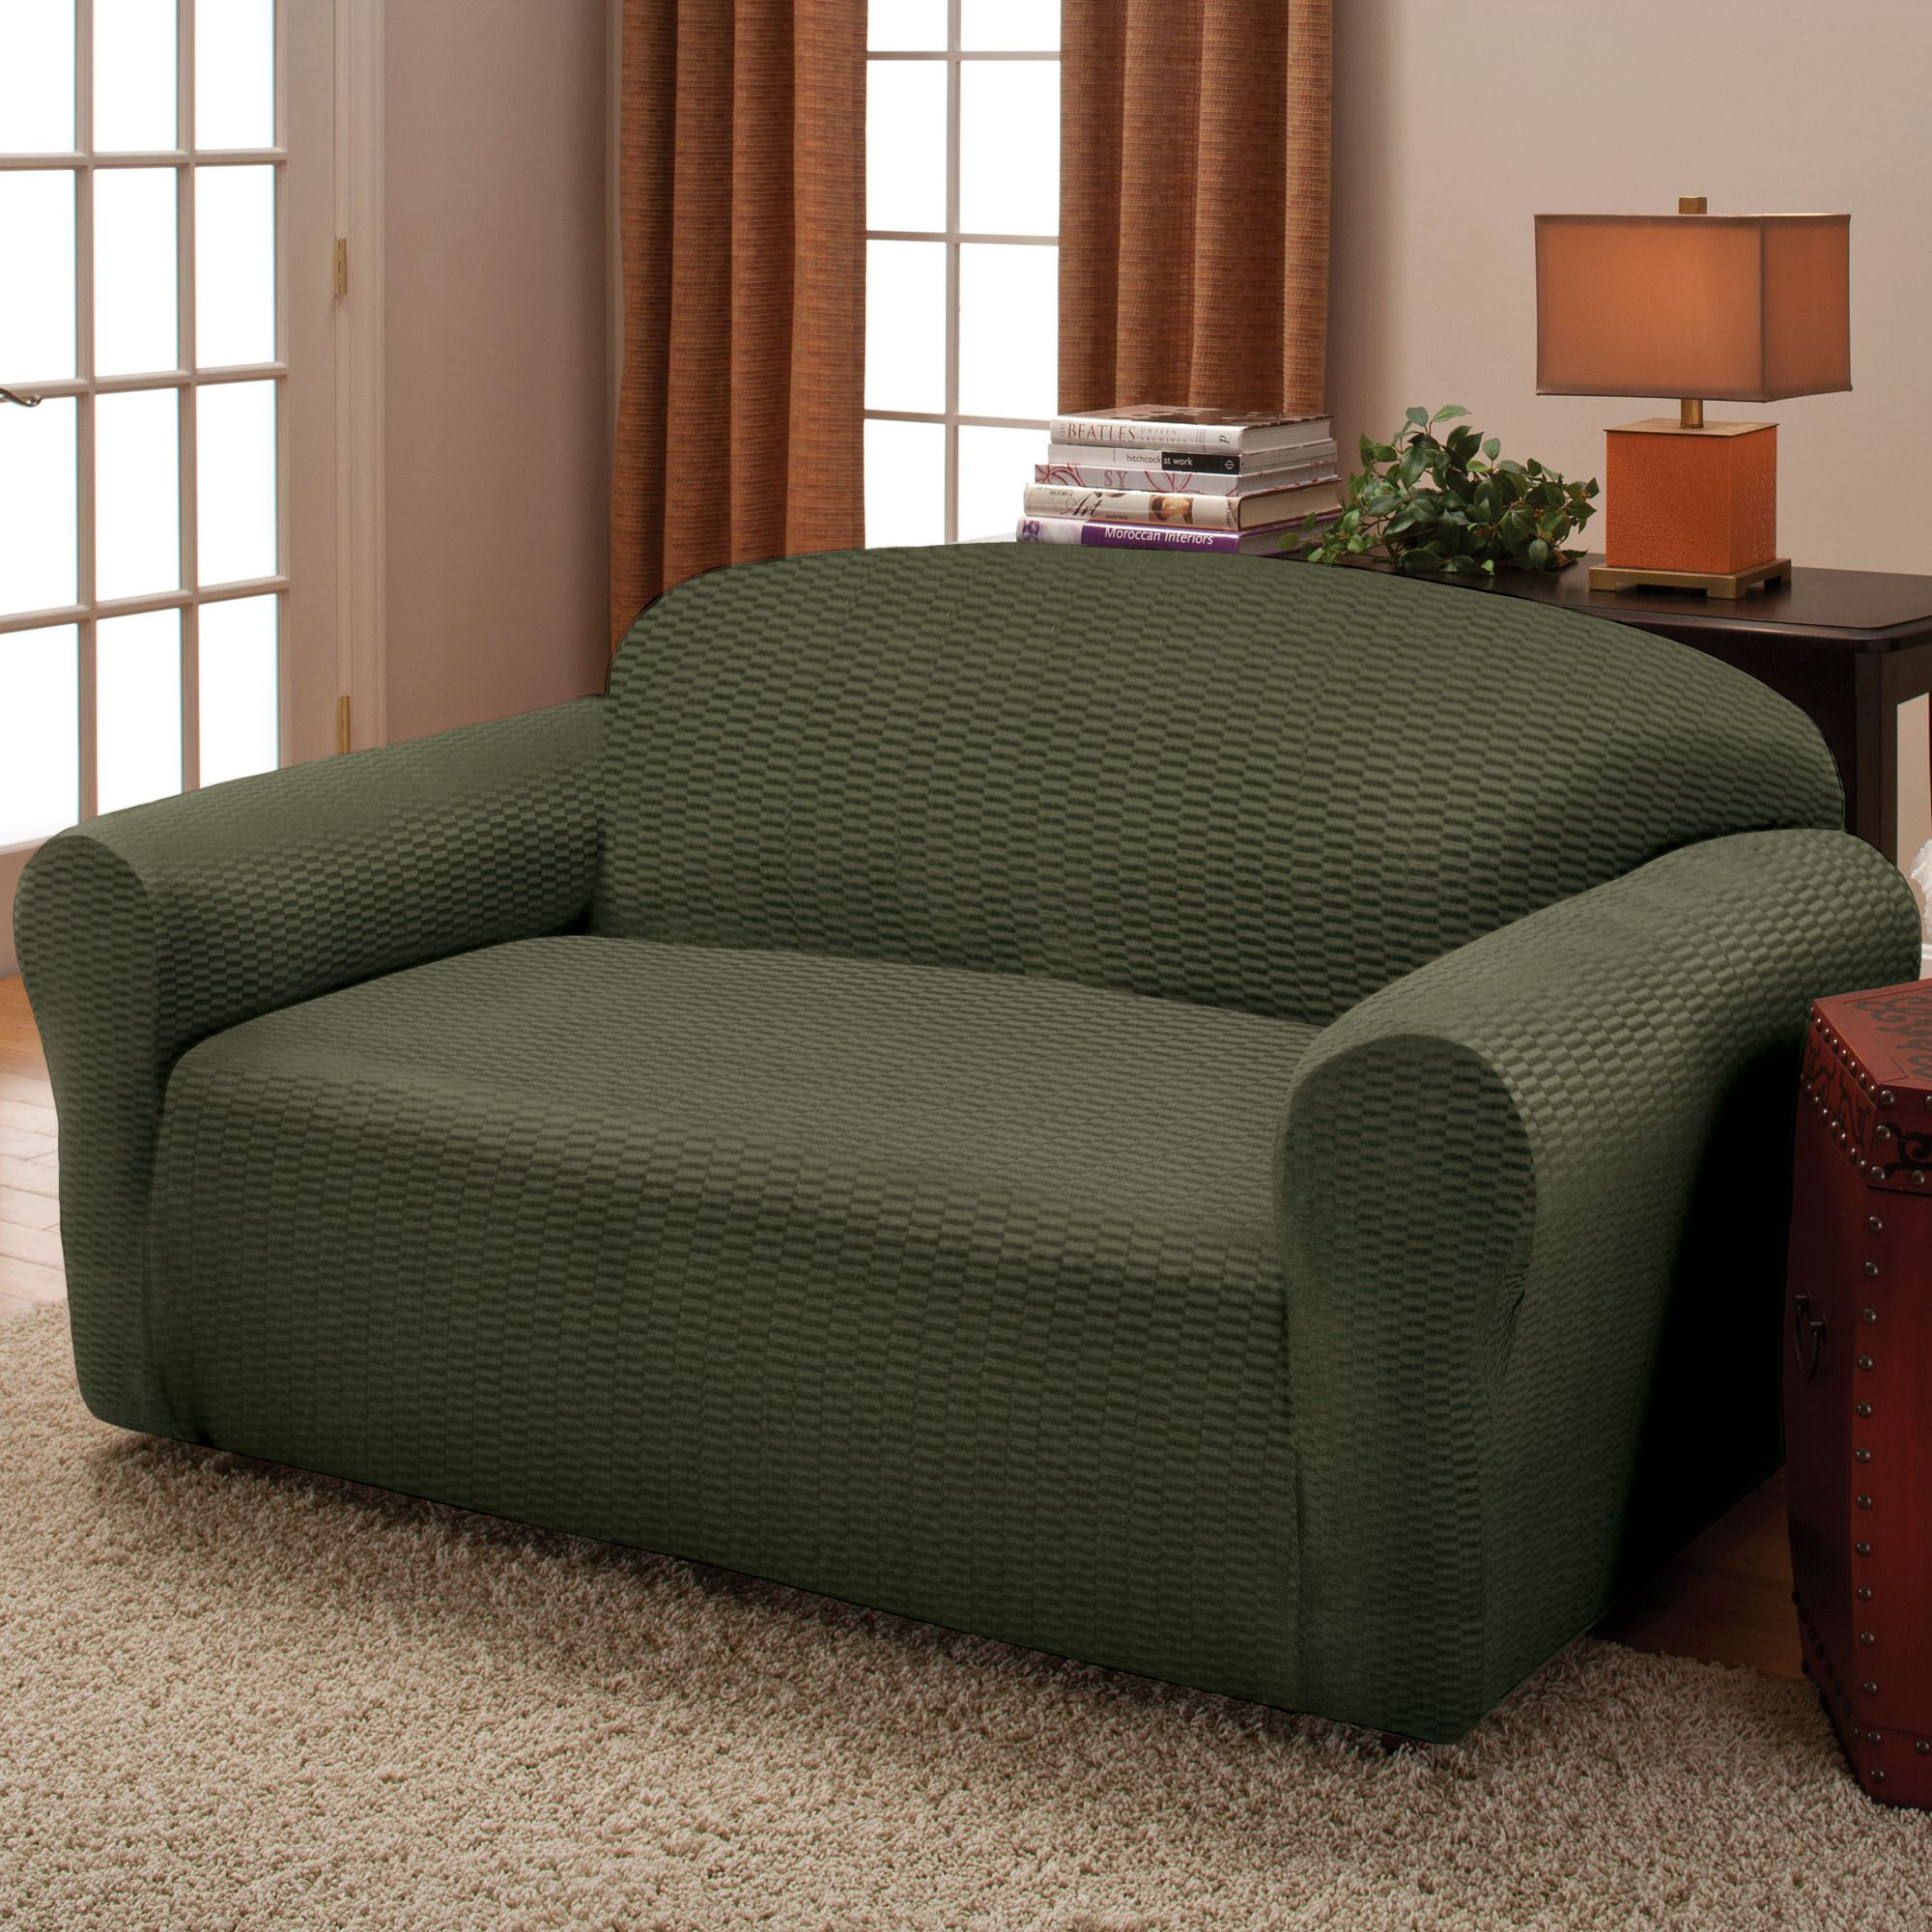 couch walmart your at ideas to armless of make sofa stylish inside furniture slipcovers covers